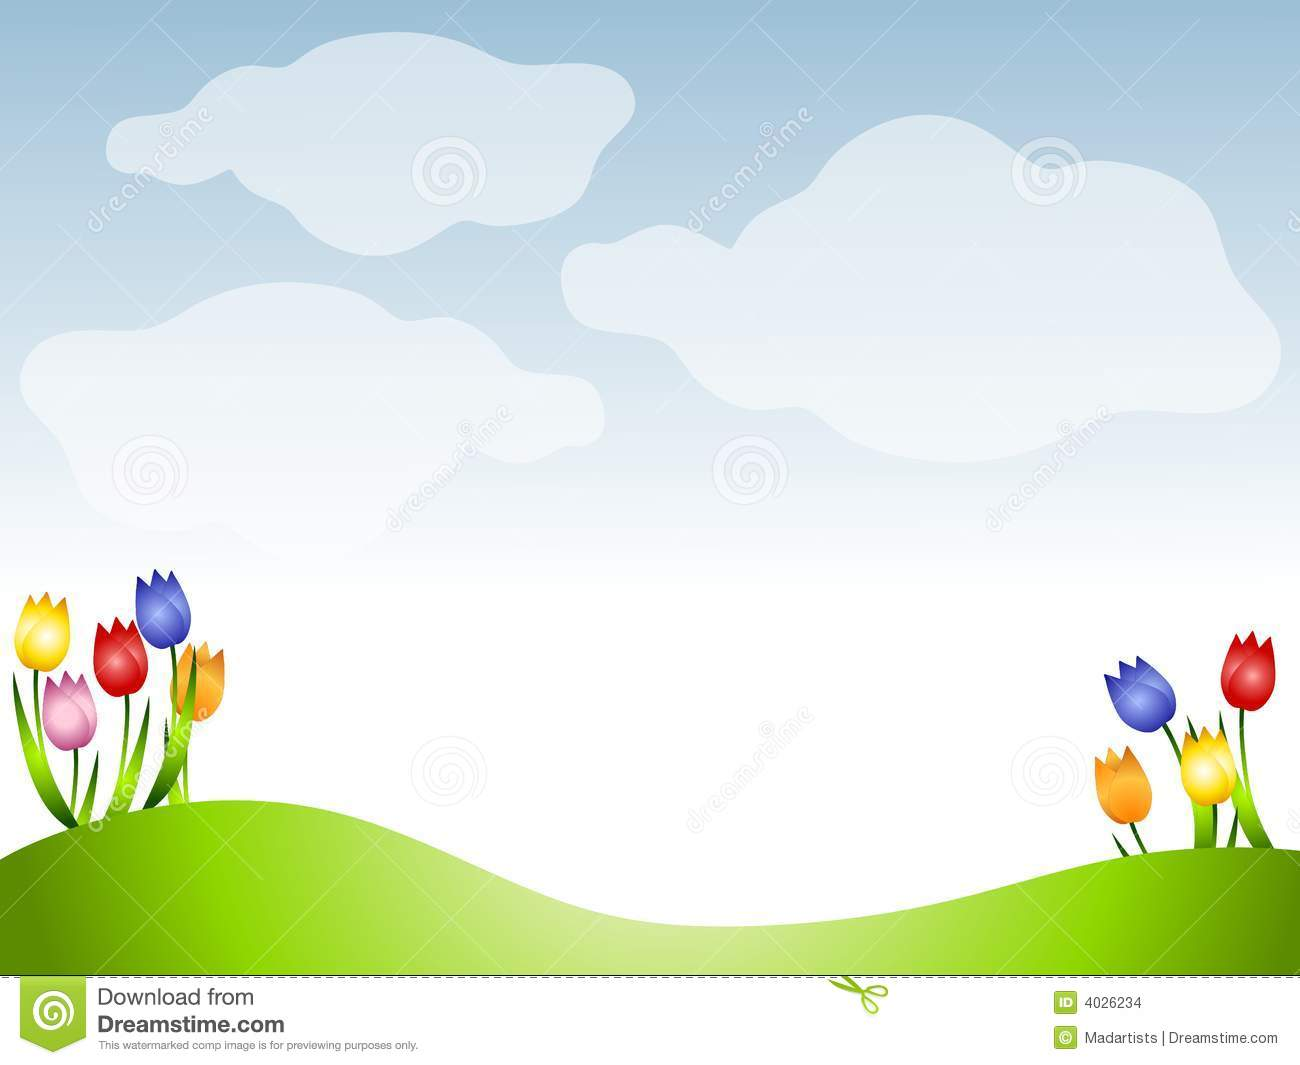 spring clipart background - photo #43